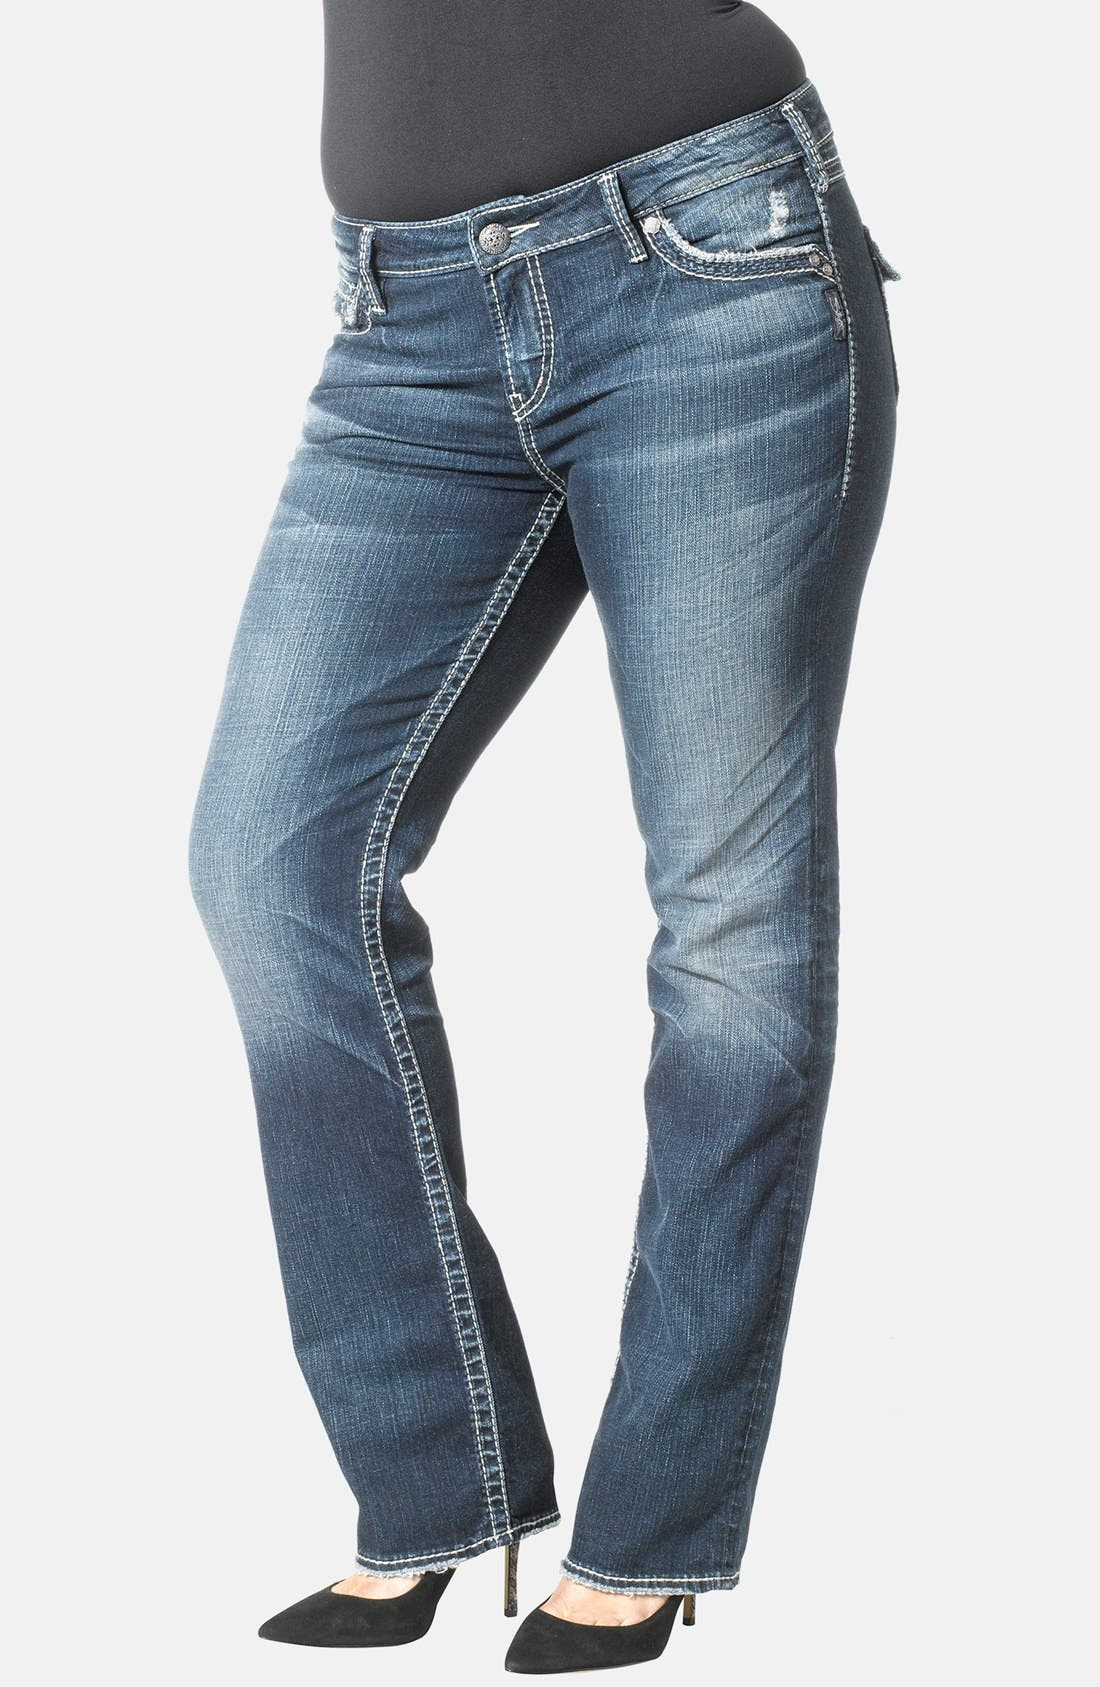 Alternate Image 1 Selected - Silver Jeans Co. 'Aiko' Distressed Flap Pocket Straight Leg Jeans (Plus Size)